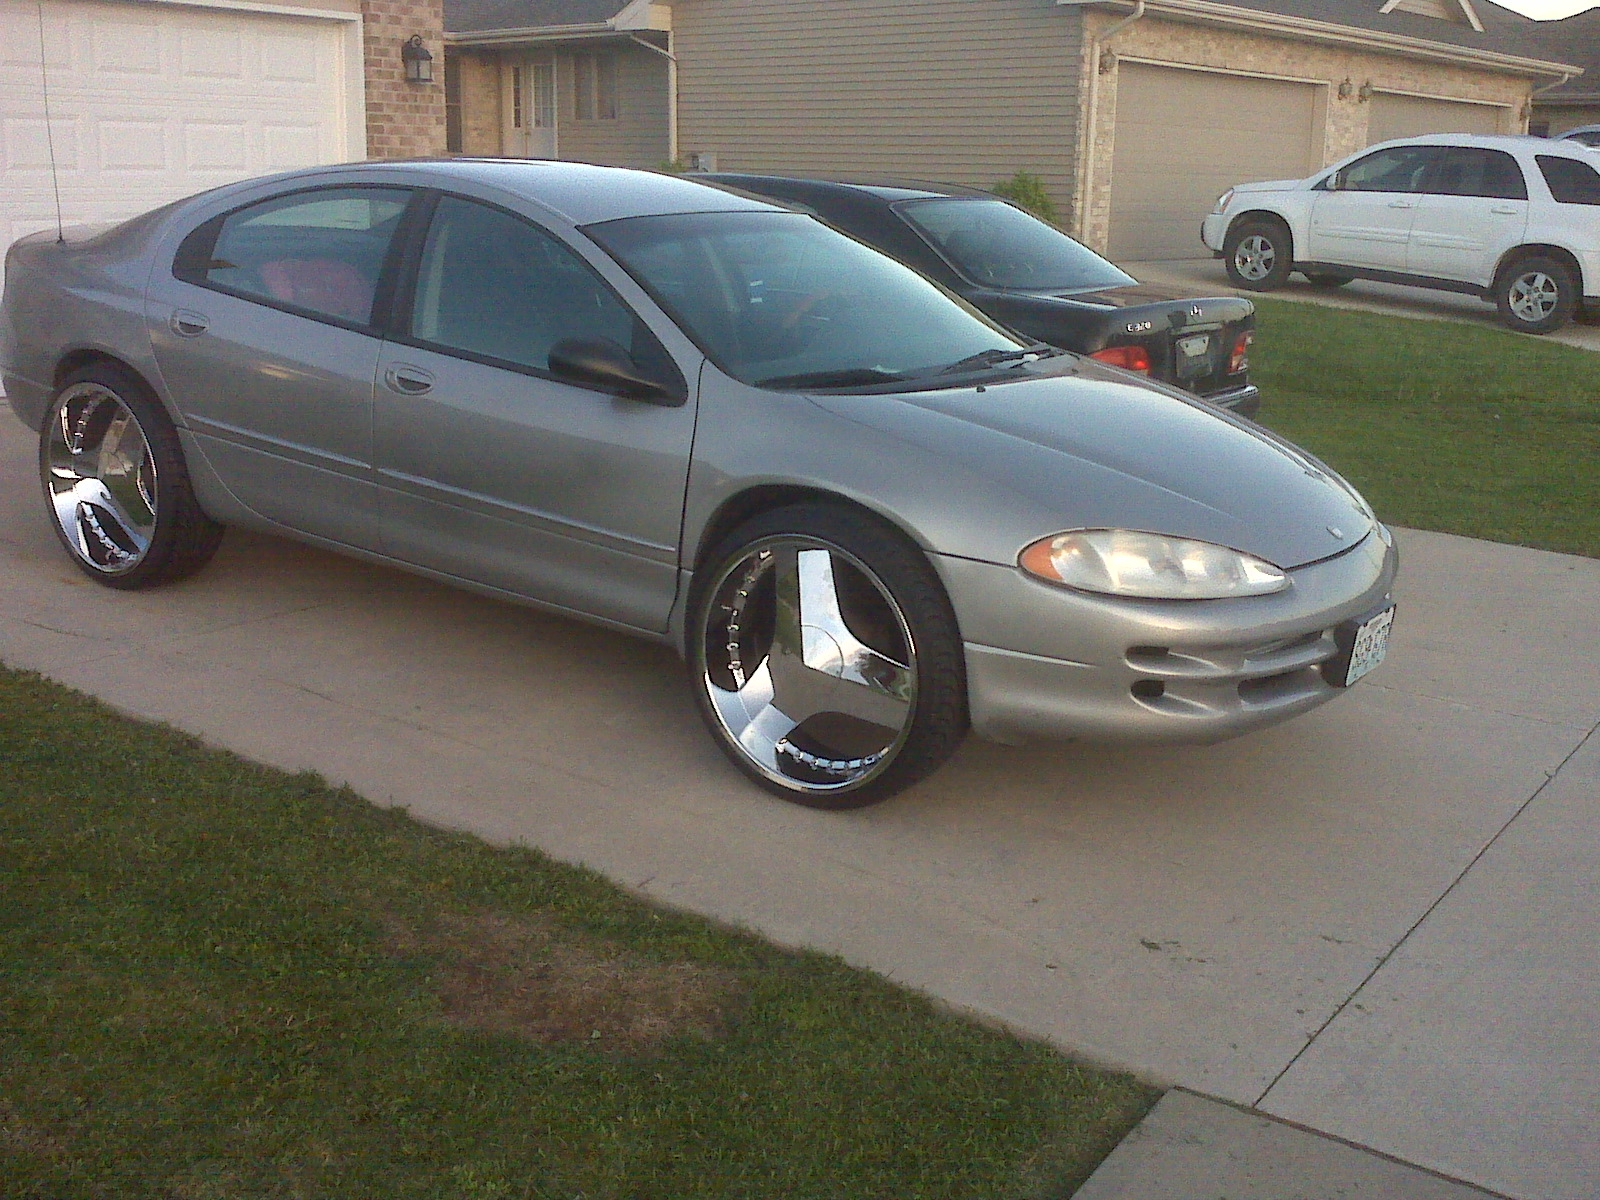 thatdude24's 2001 Dodge Intrepid